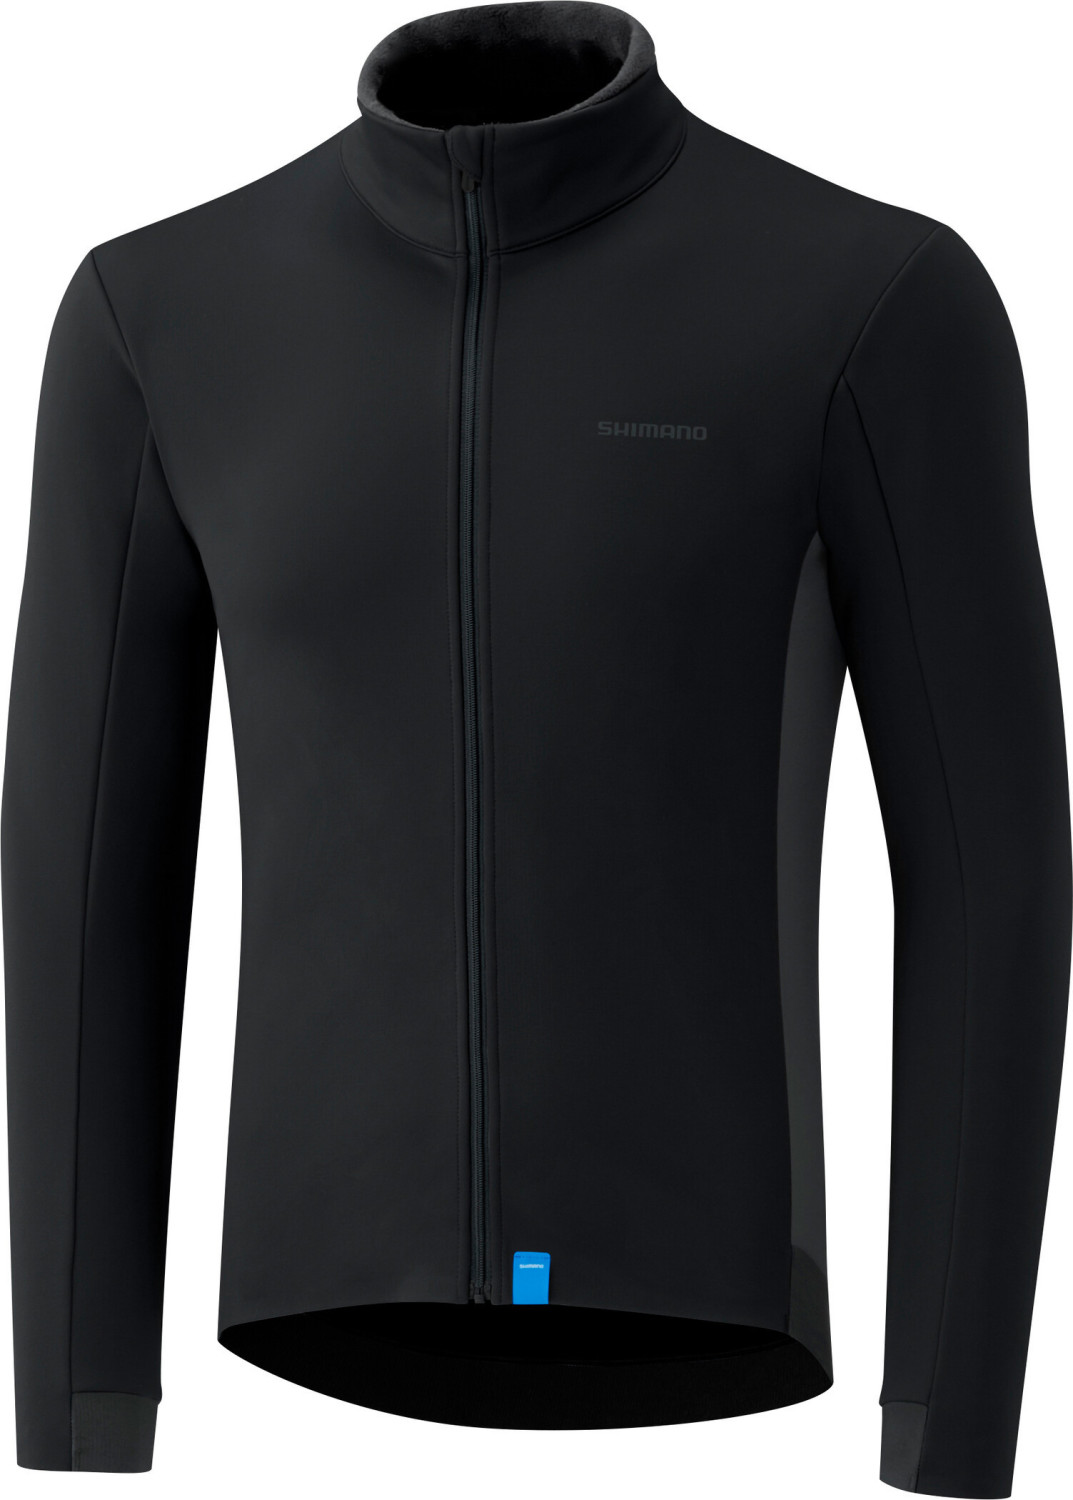 Shimano Wind Trikot Men's black